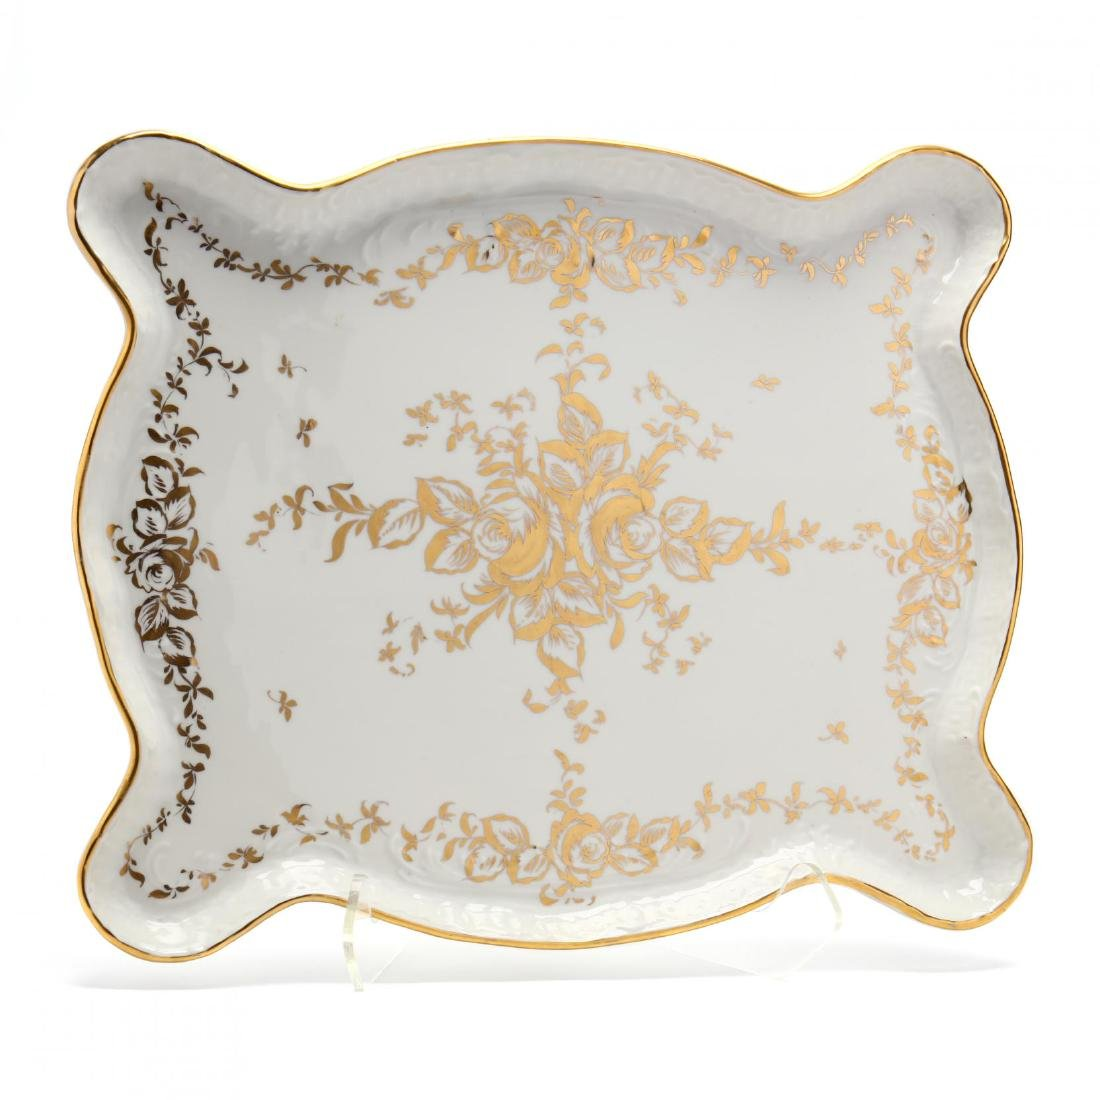 A Large Hand-Painted Vintage Limoges Tray